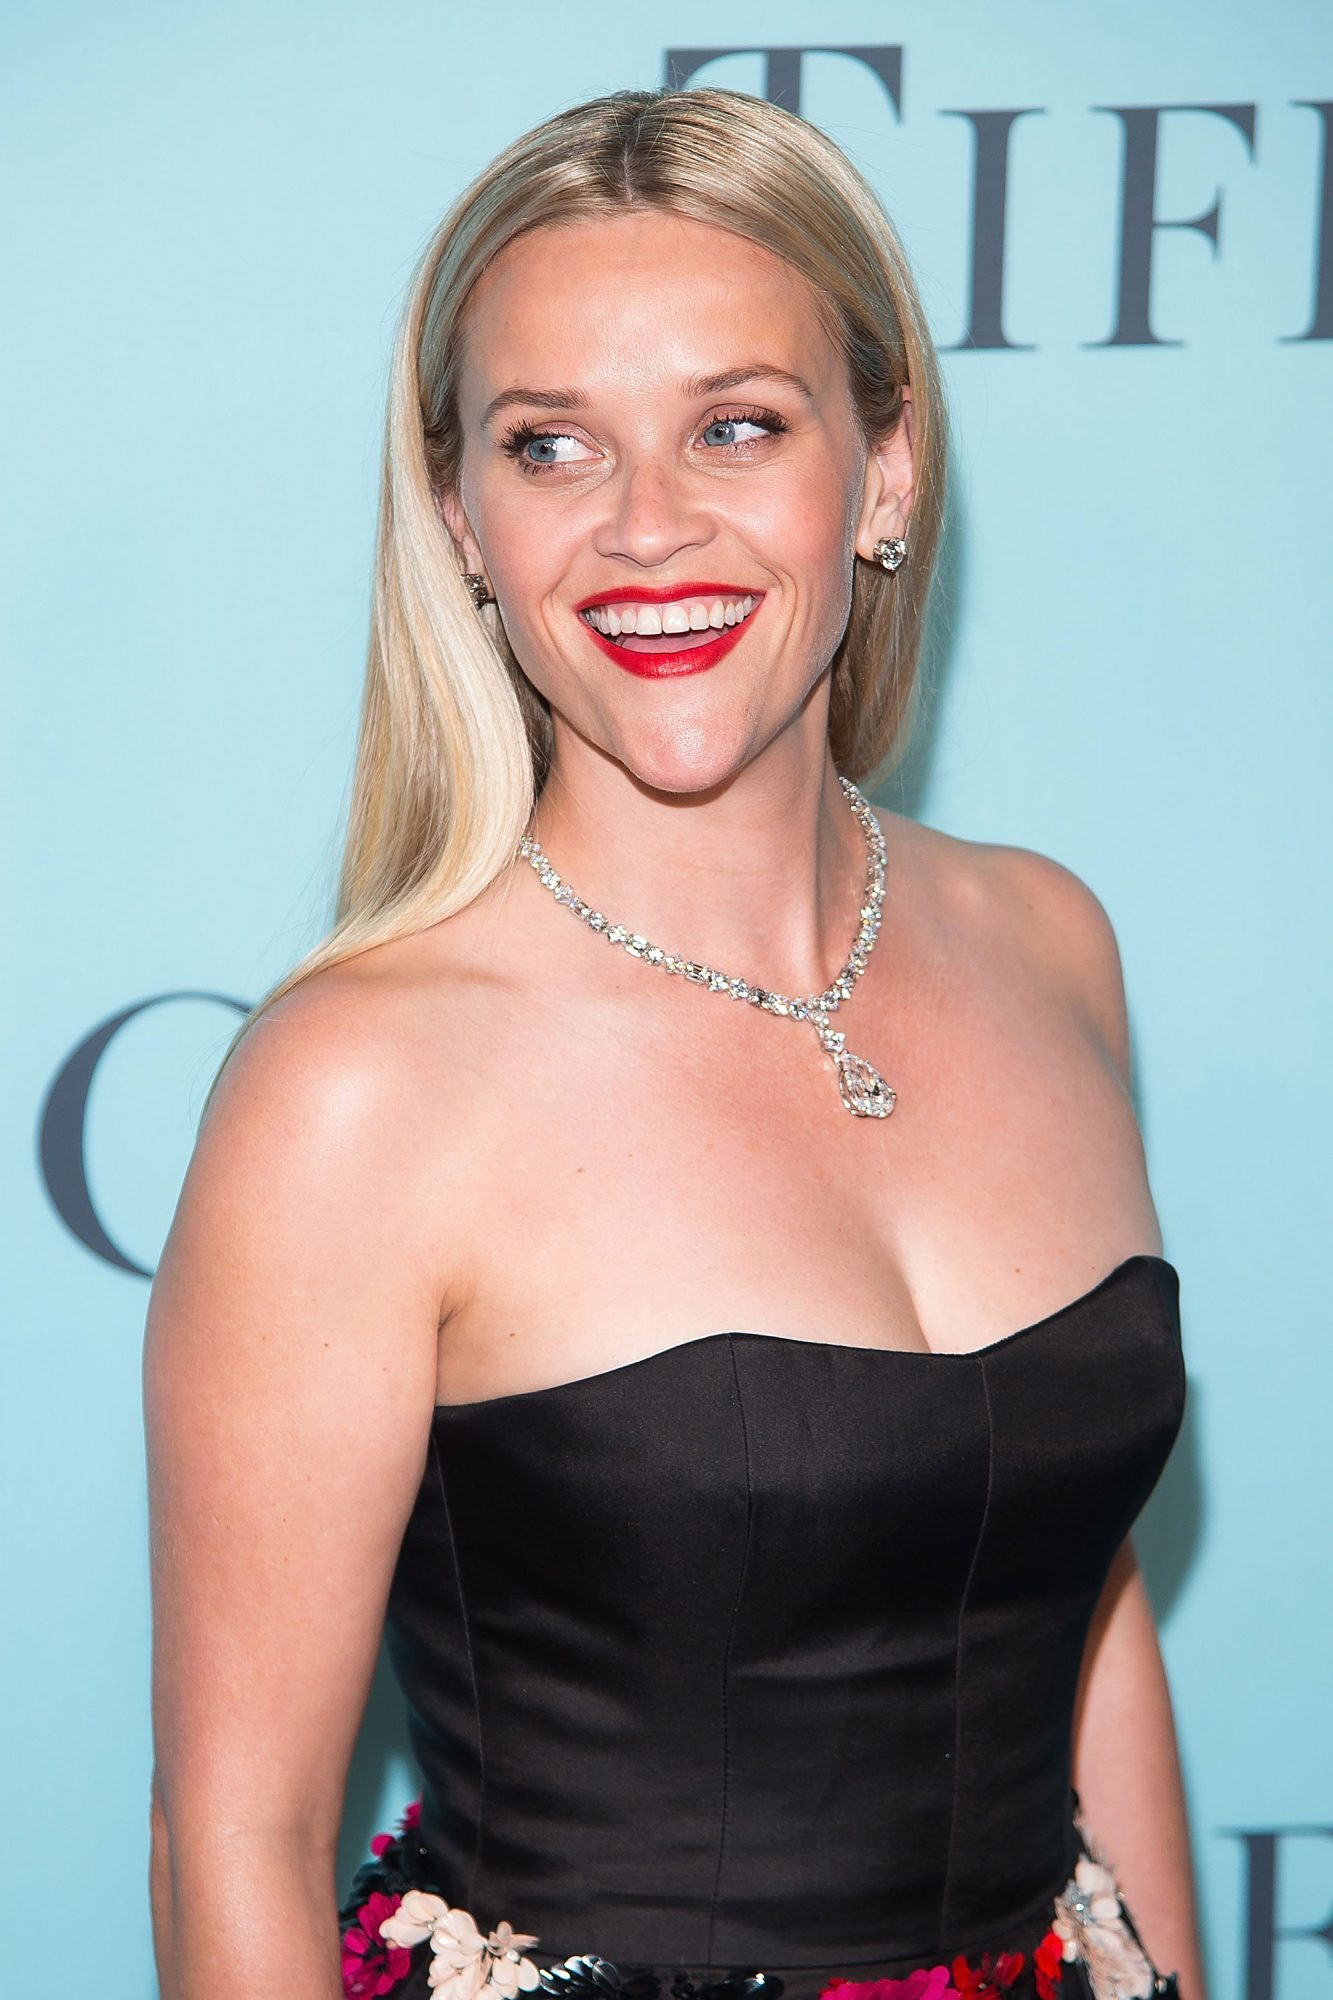 Reese Witherspoon Celebrity Southerner Portrait